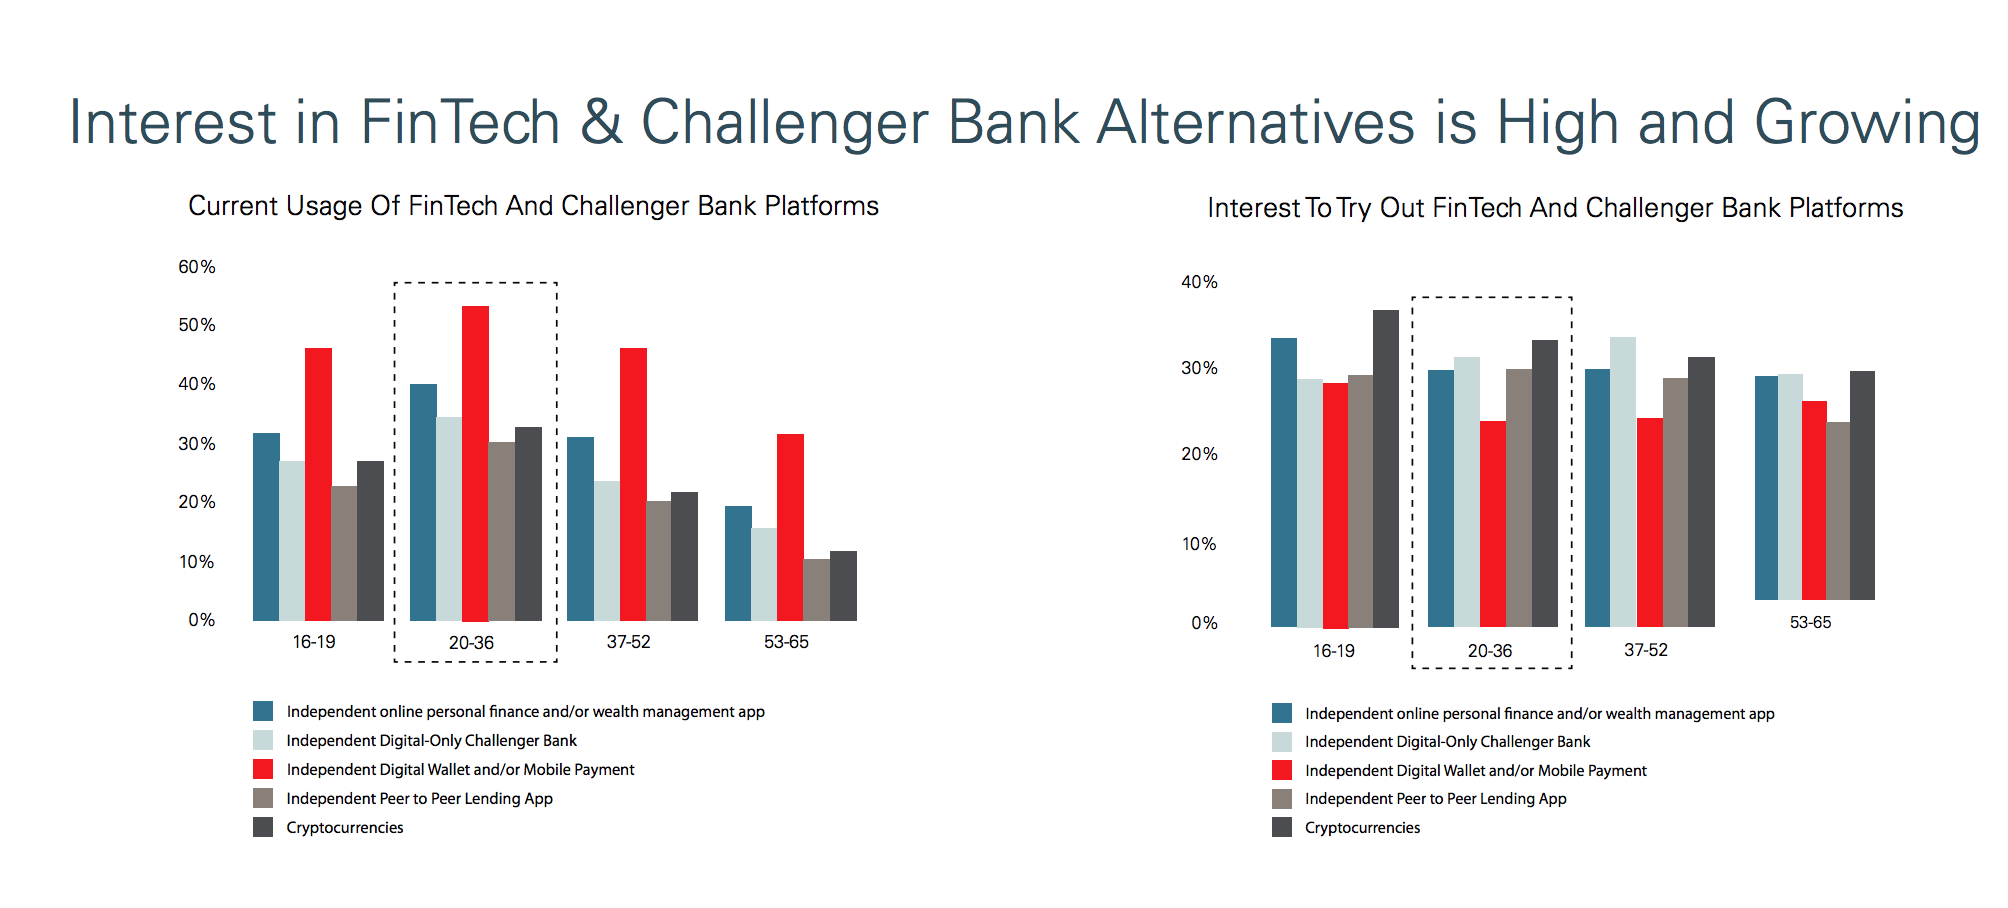 Interest in fintech and challenger banks